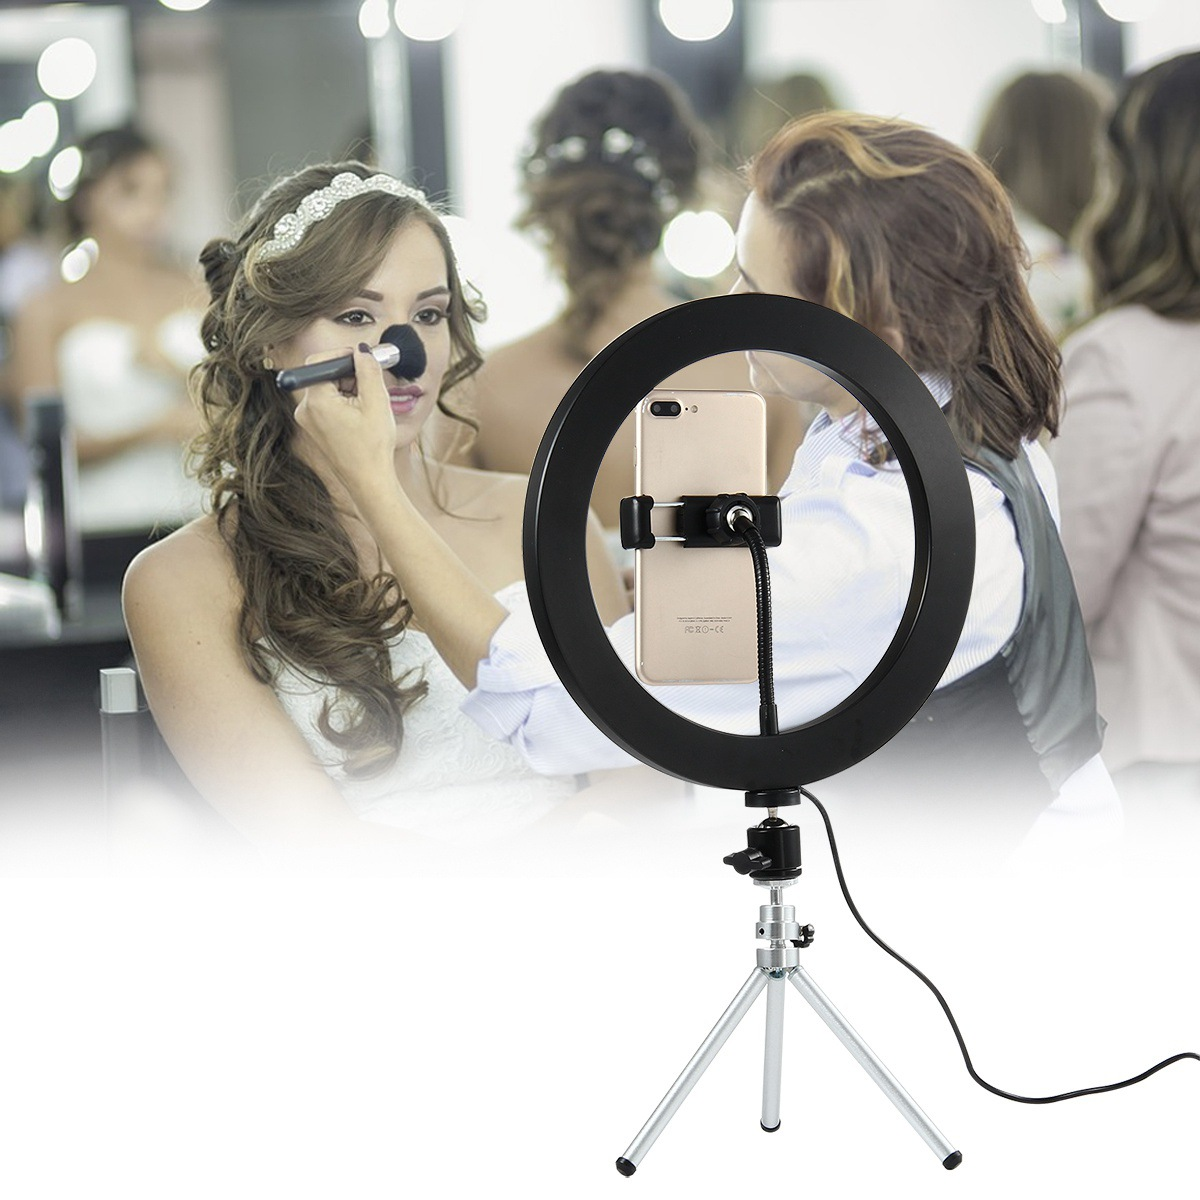 Phone Holder With Bright Light For Live Show Shooting Video Makeup Bracket Clamp Clip On Desk LED Lamp Smartphone Support Stand|Phone Holders & Stands| |  - title=